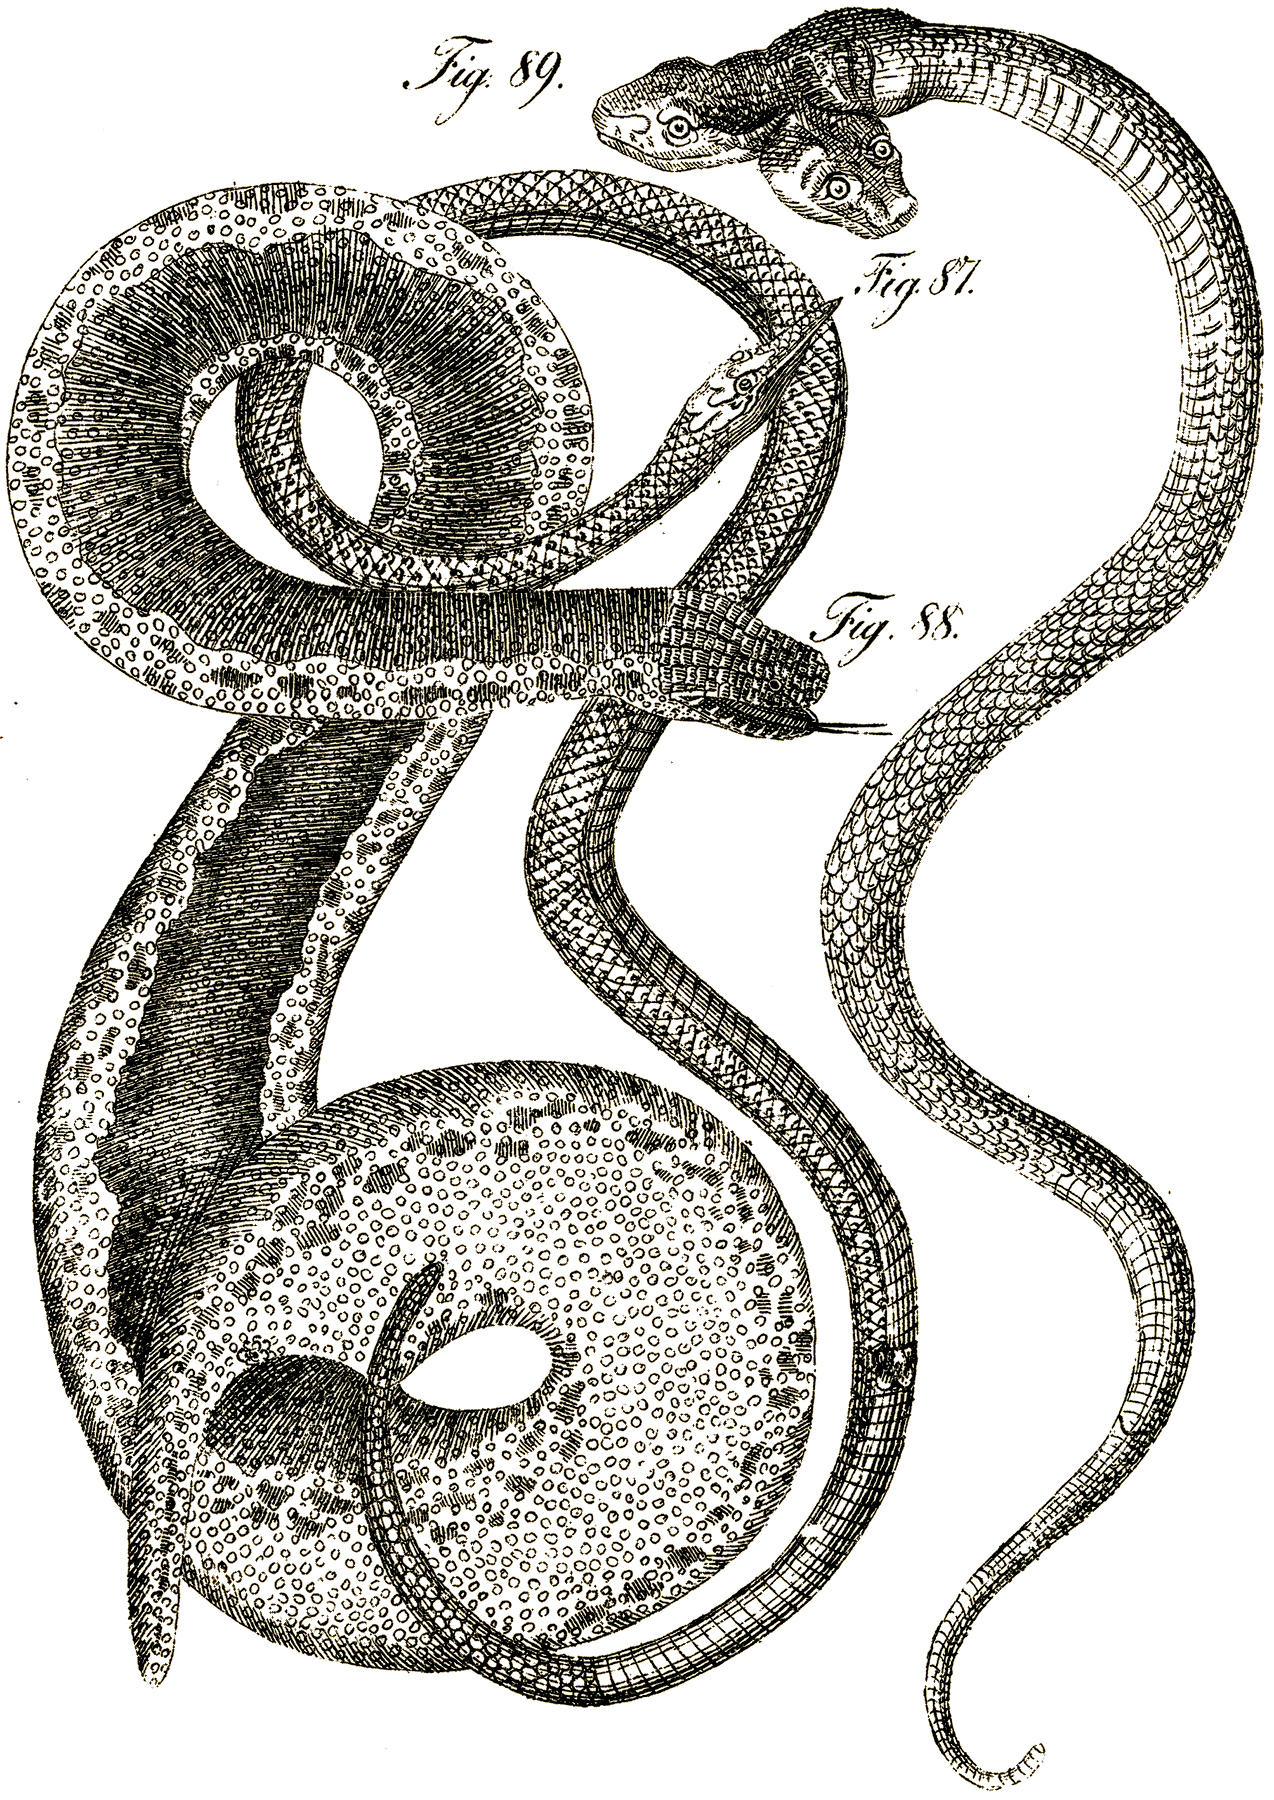 Serpent clipart snake head Graphics Clip Snake Headed Art